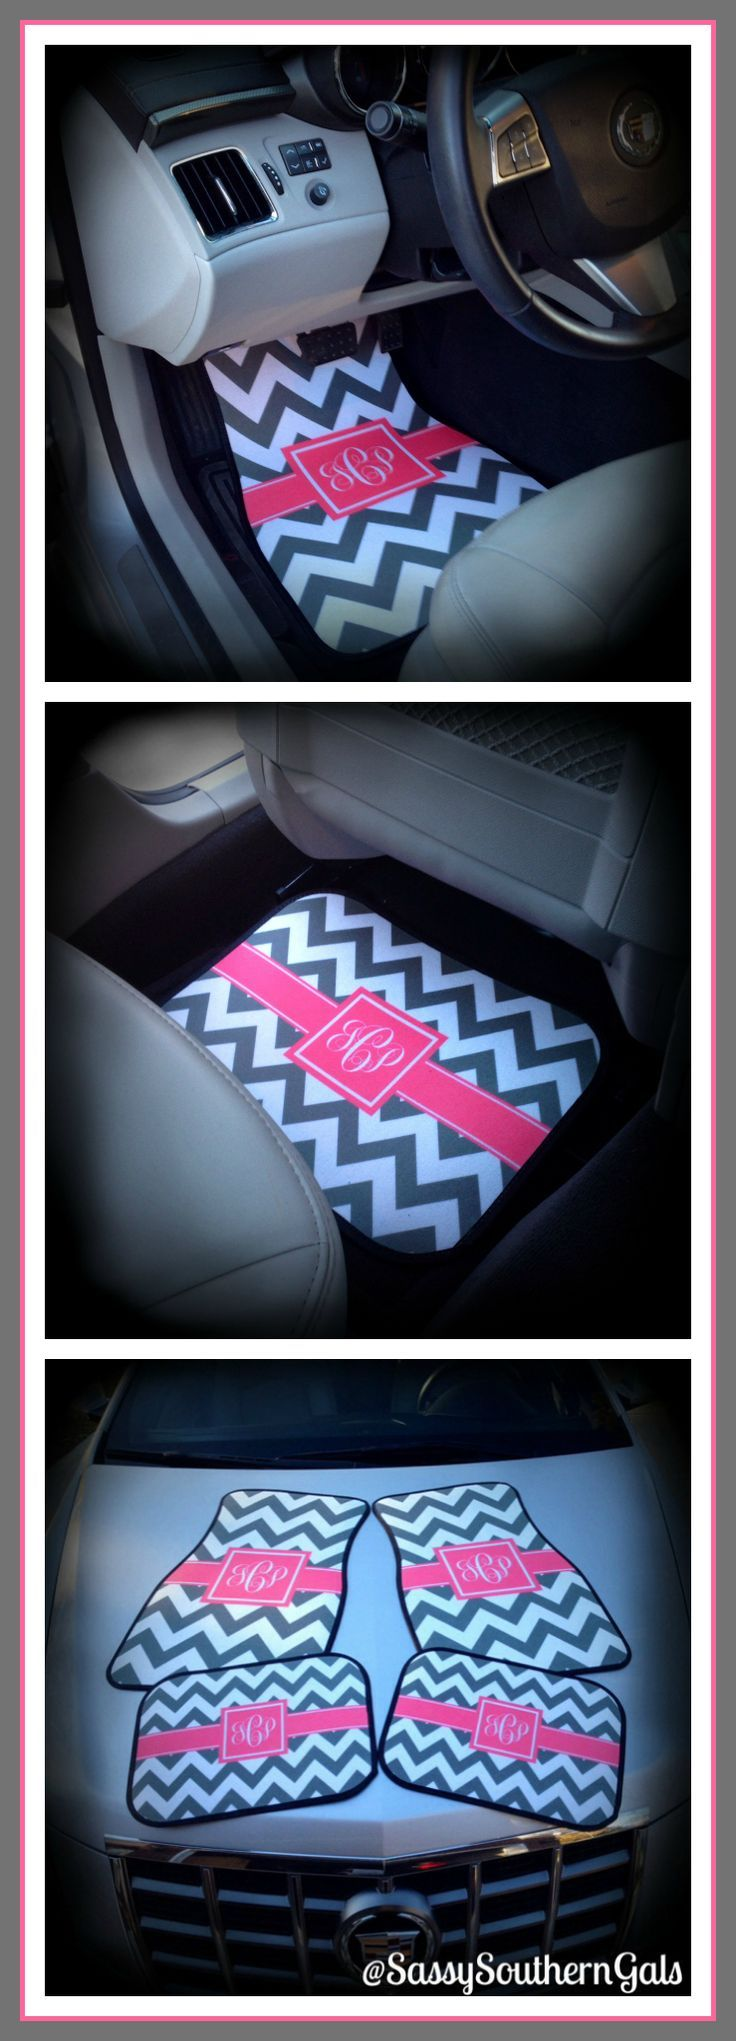 floor retro carmat personalized chevron mats seat monogram back car p aggregate